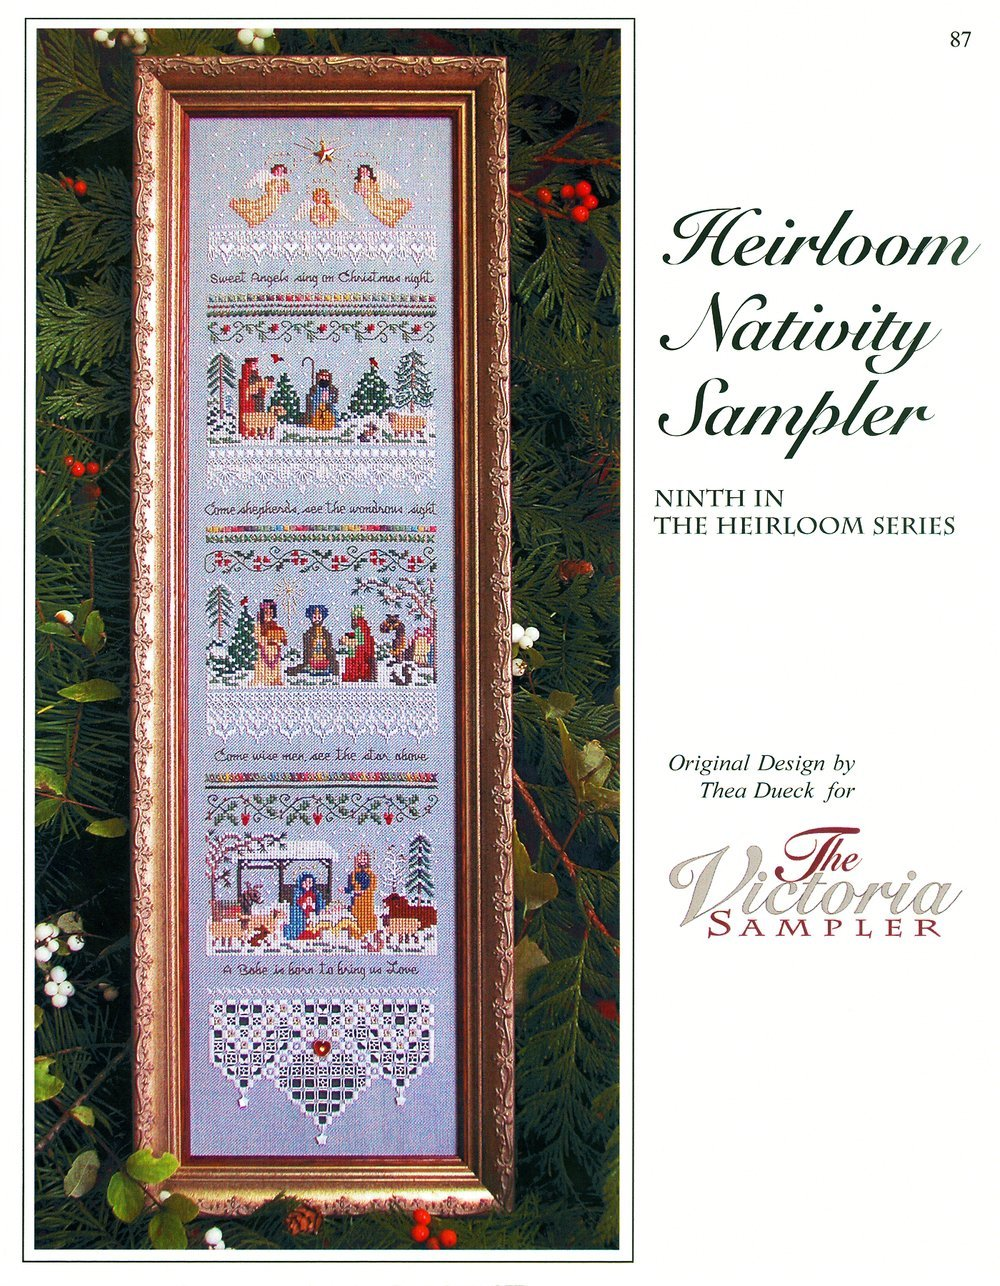 HEIRLOON NATIVITY SAMPLER